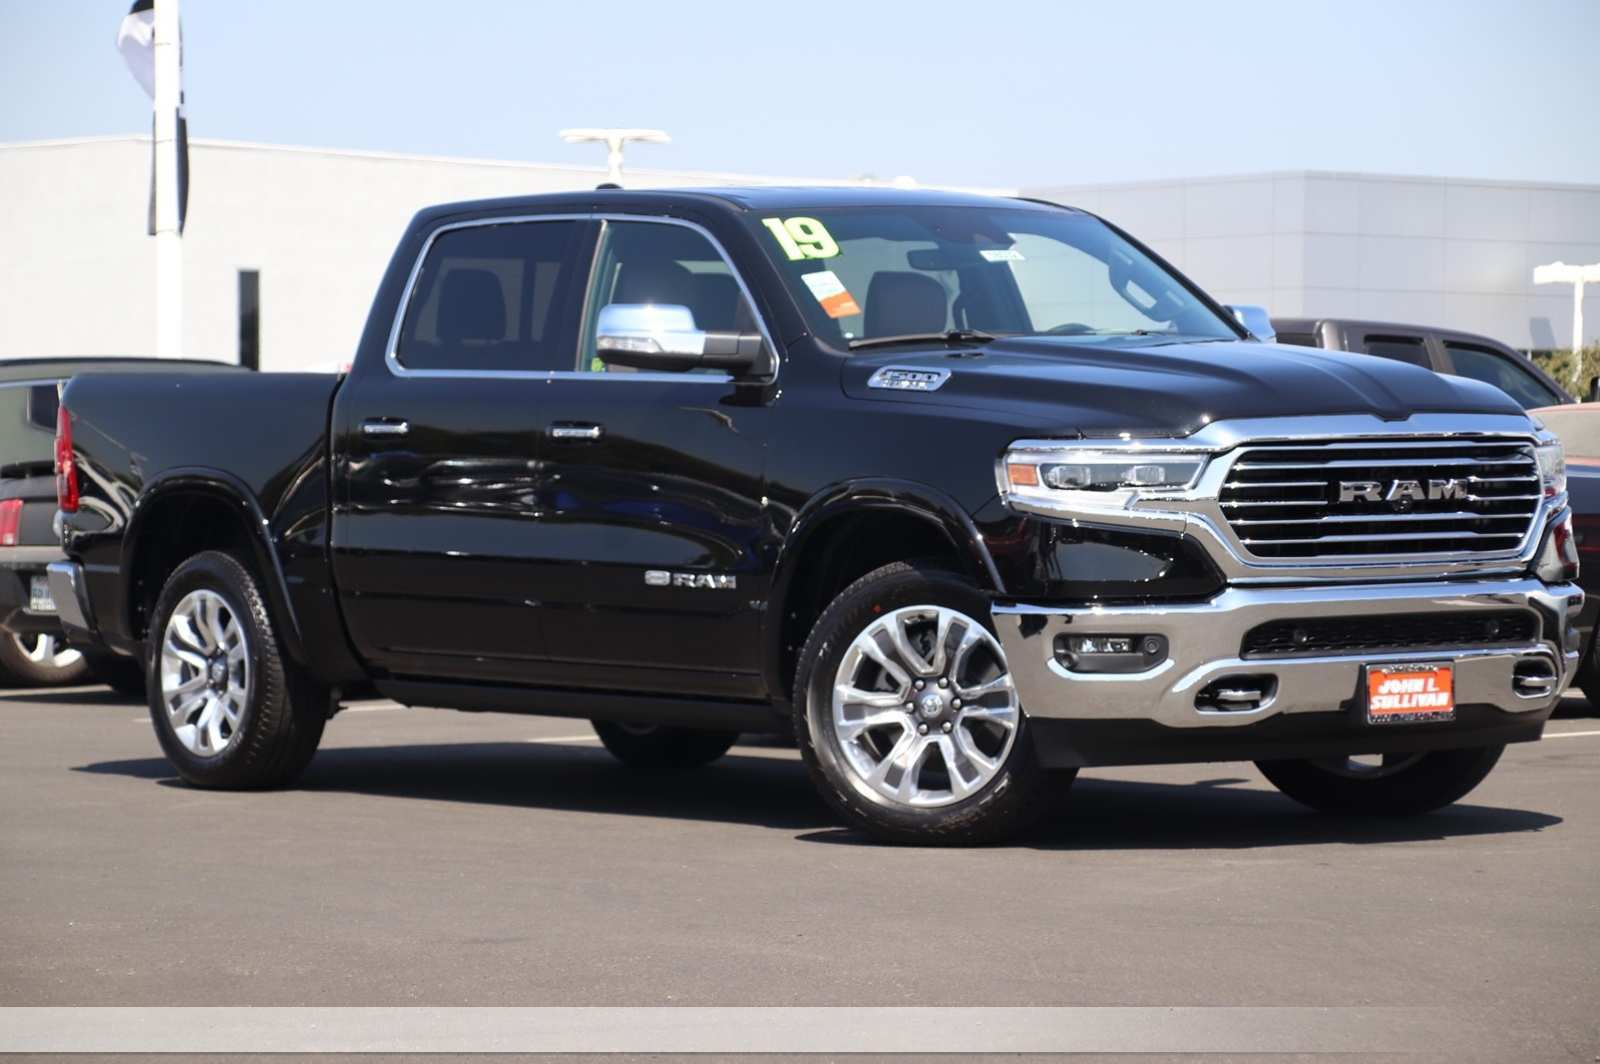 21 All New 2019 Dodge 1500 For Sale Spy Shoot with 2019 Dodge 1500 For Sale